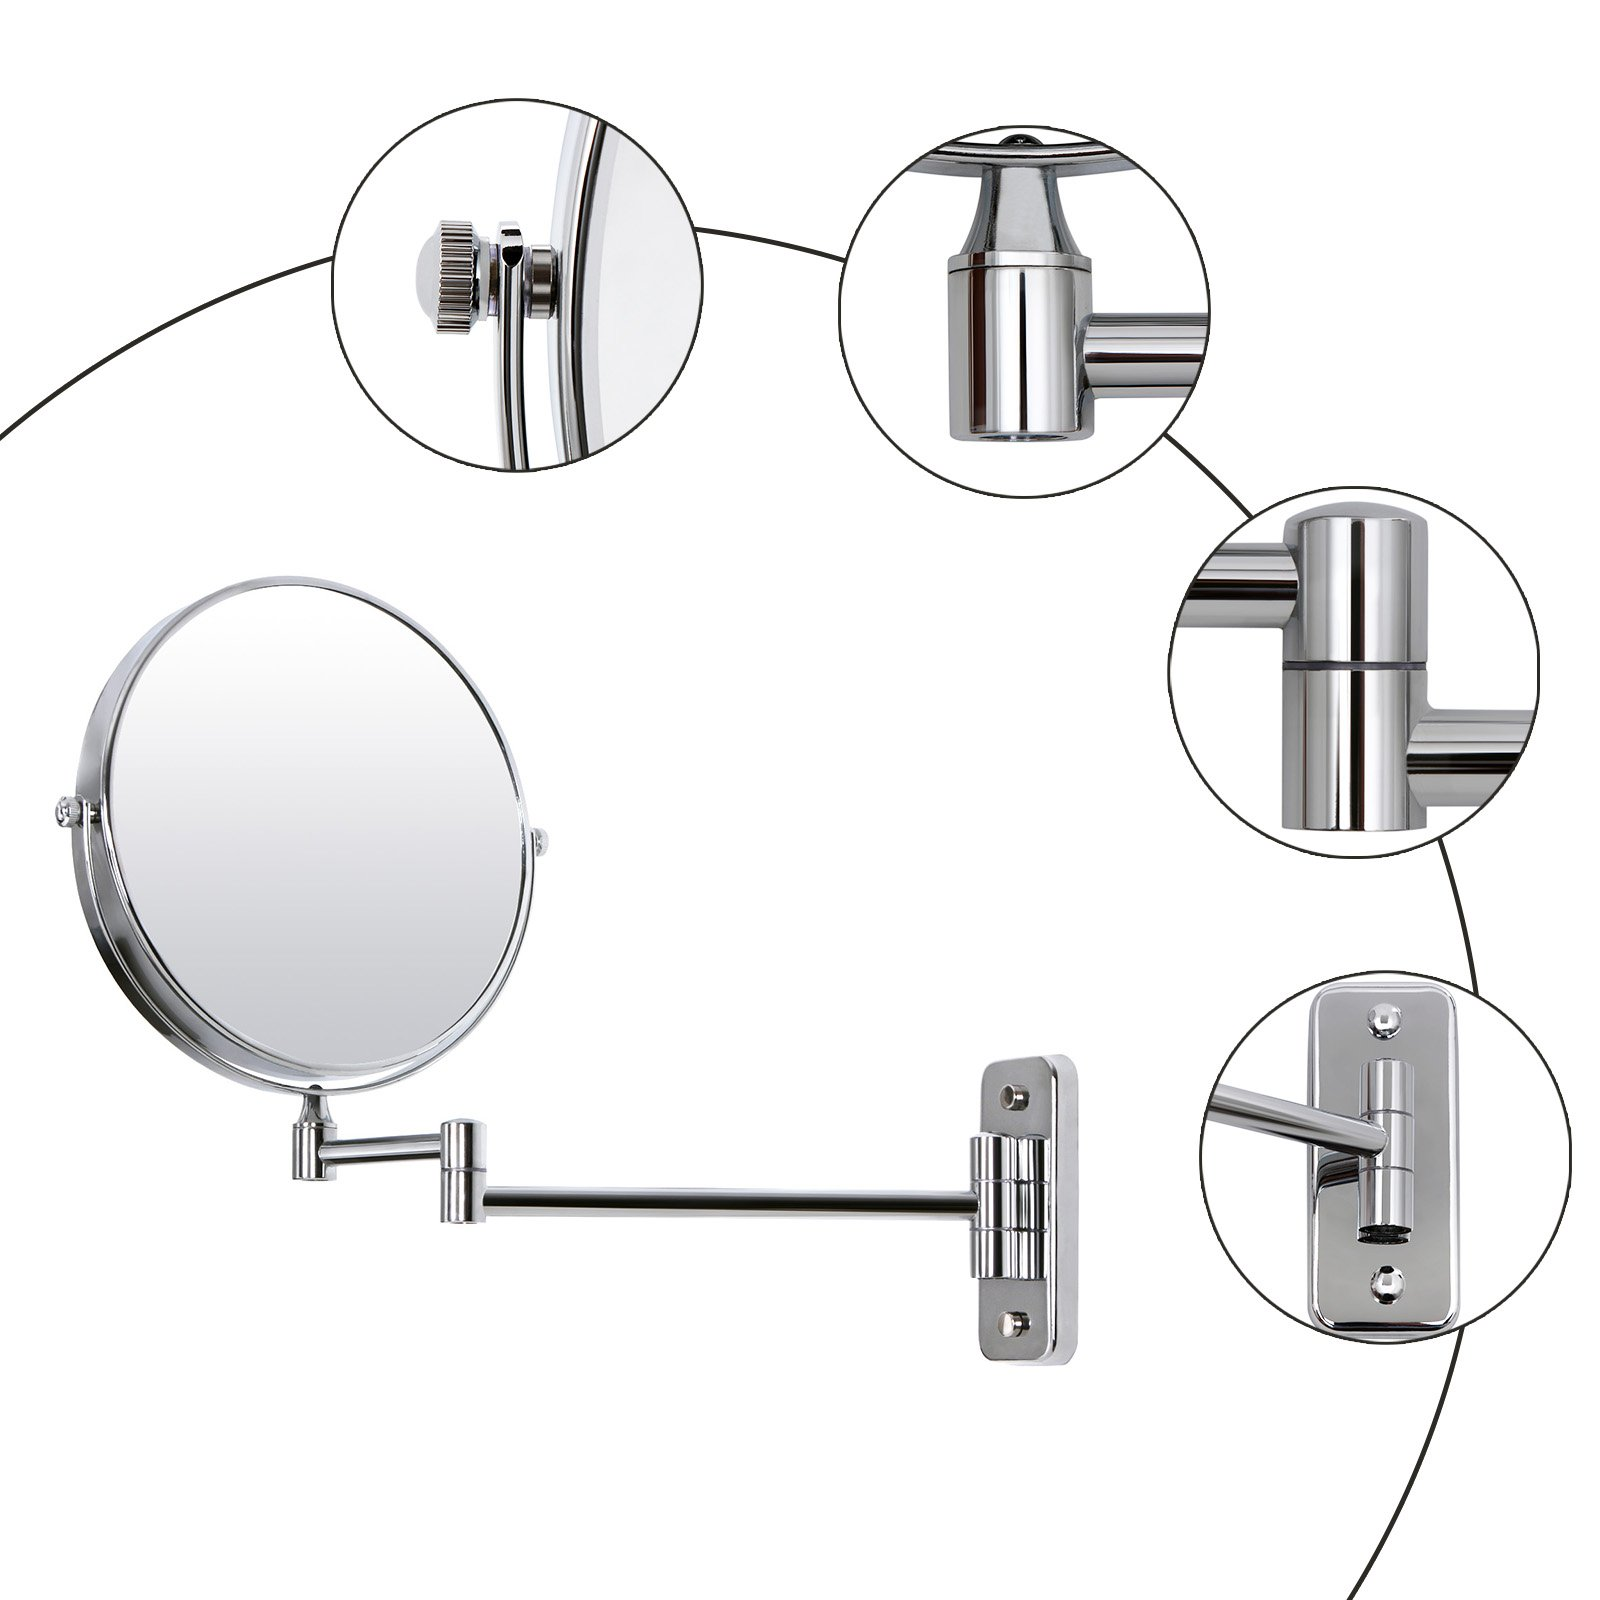 SONGMICS 8'' Two-Sided Wall Mount Makeup Mirror 360° Swivel Extendable 7x Cosmetic Mirror UBBM713 by SONGMICS (Image #4)